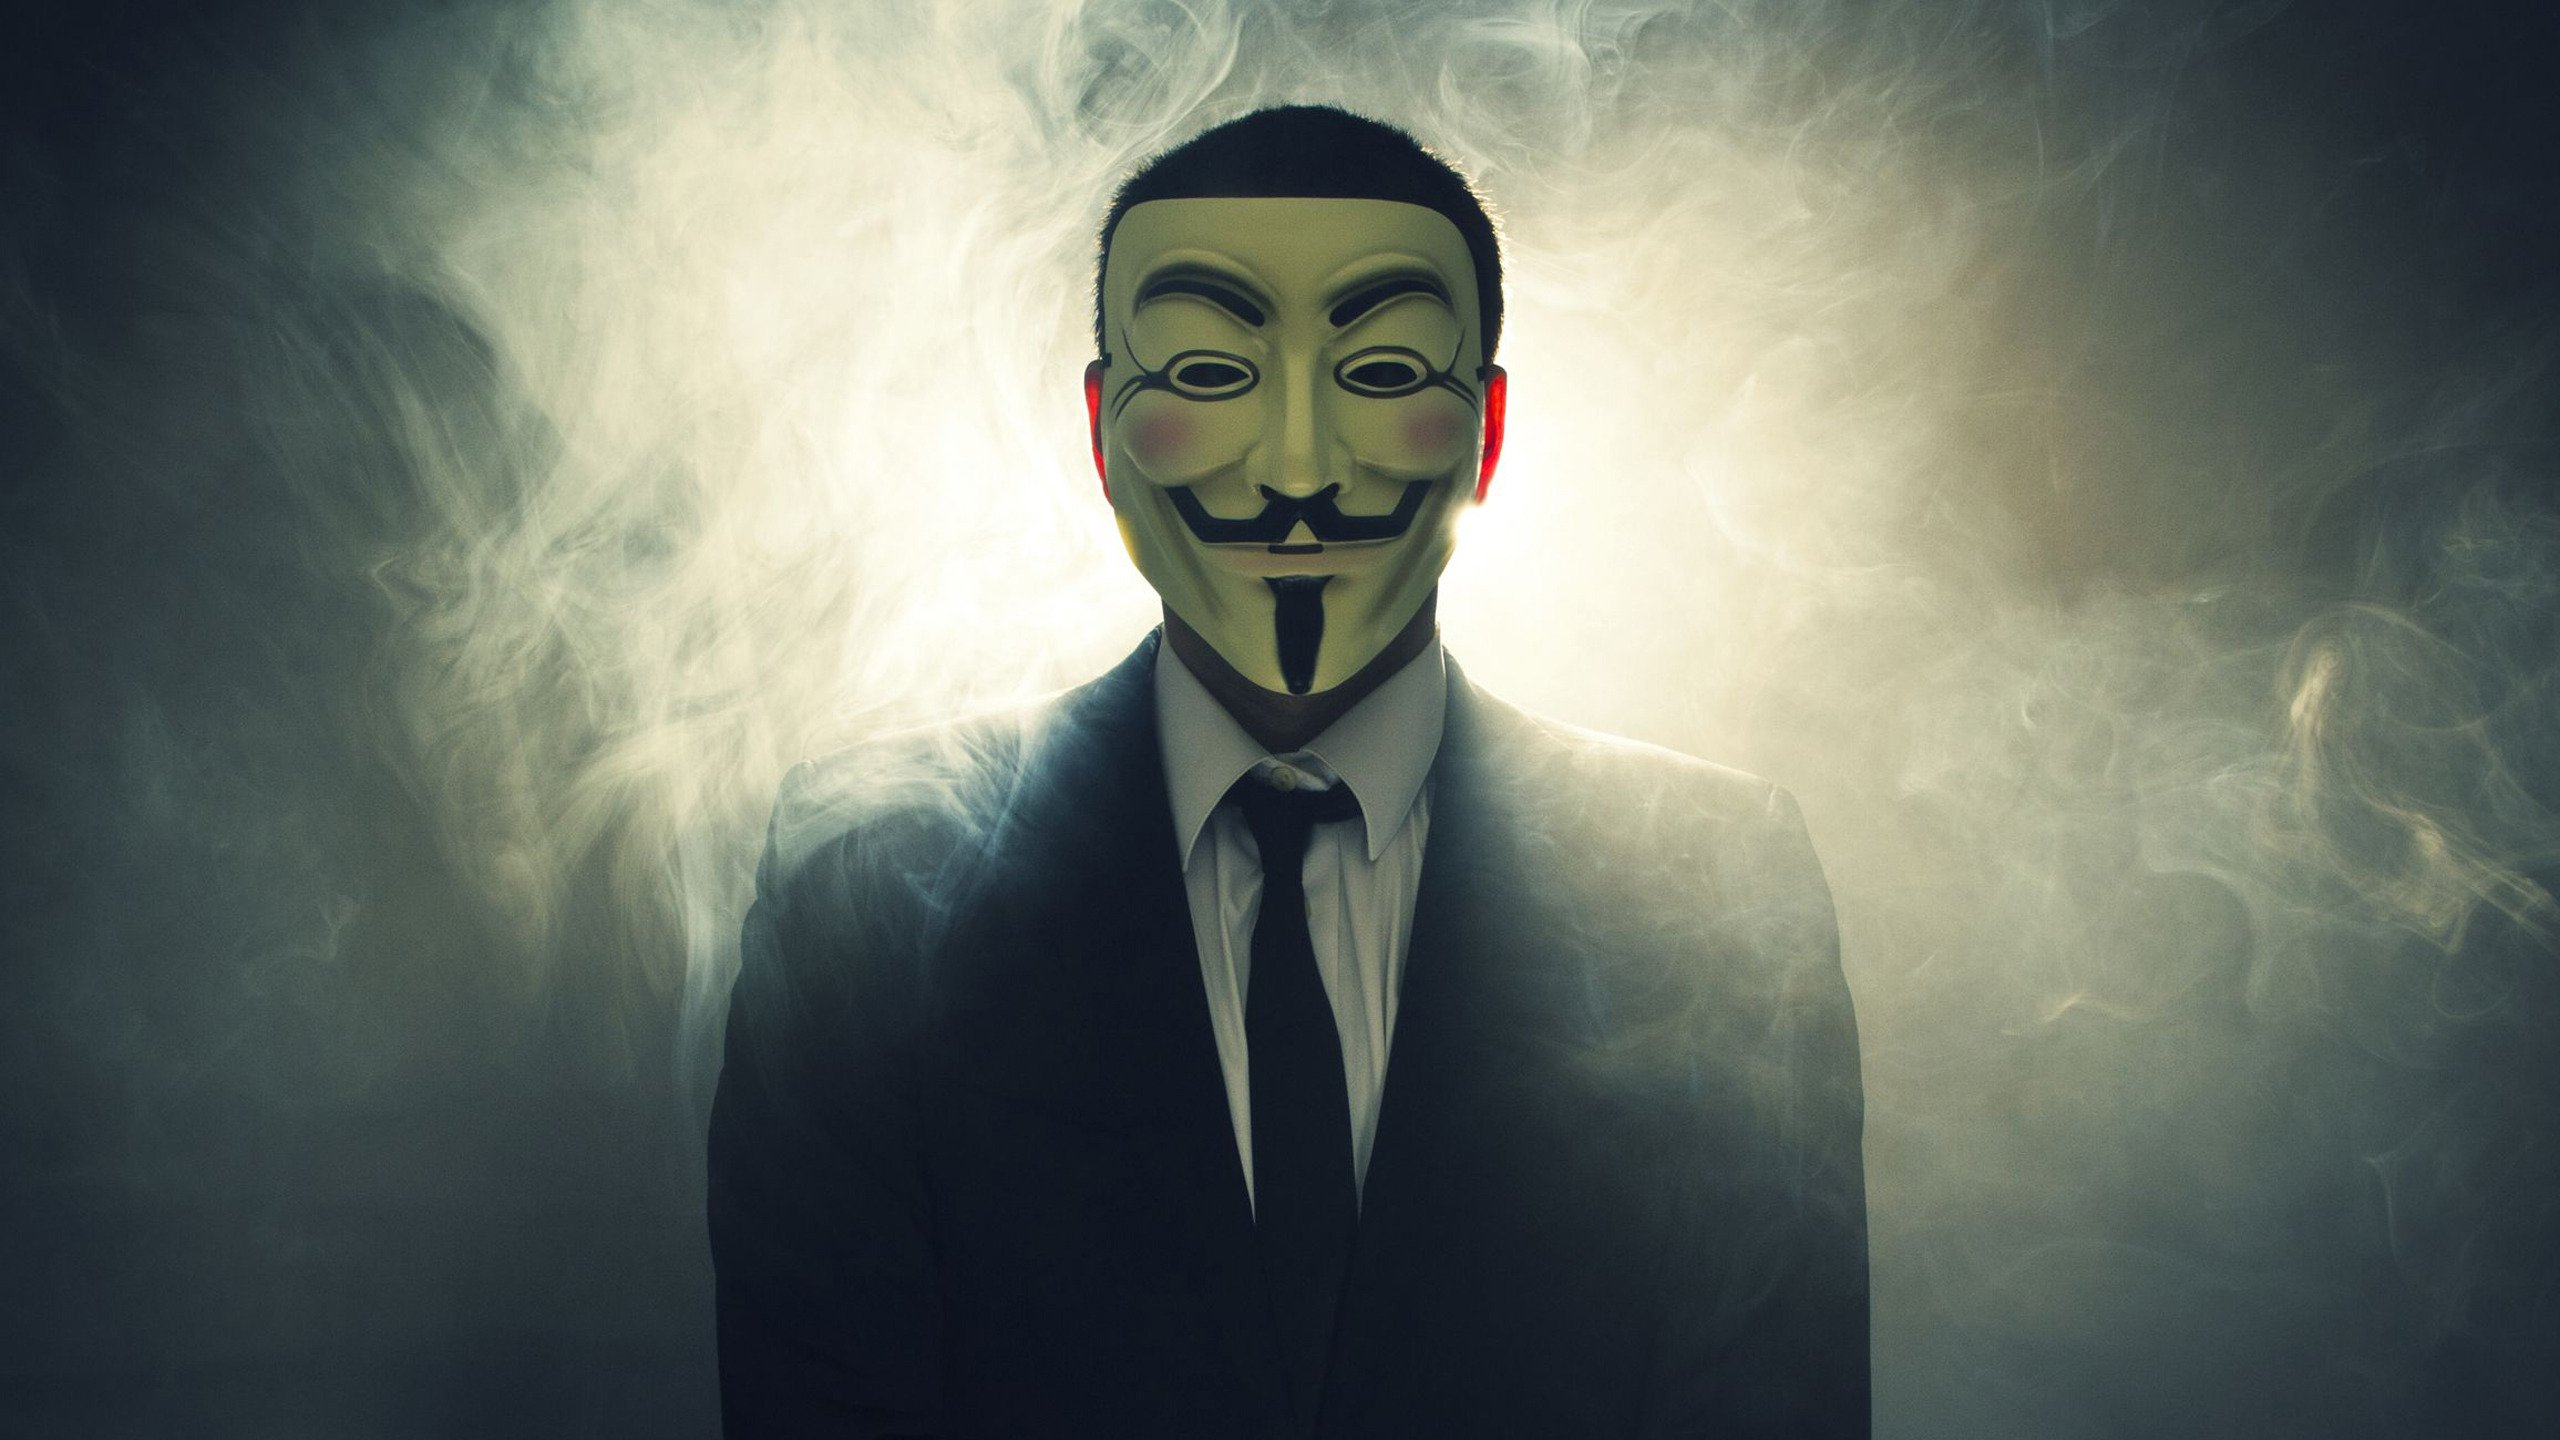 Anonymous Image Wallpaper HD